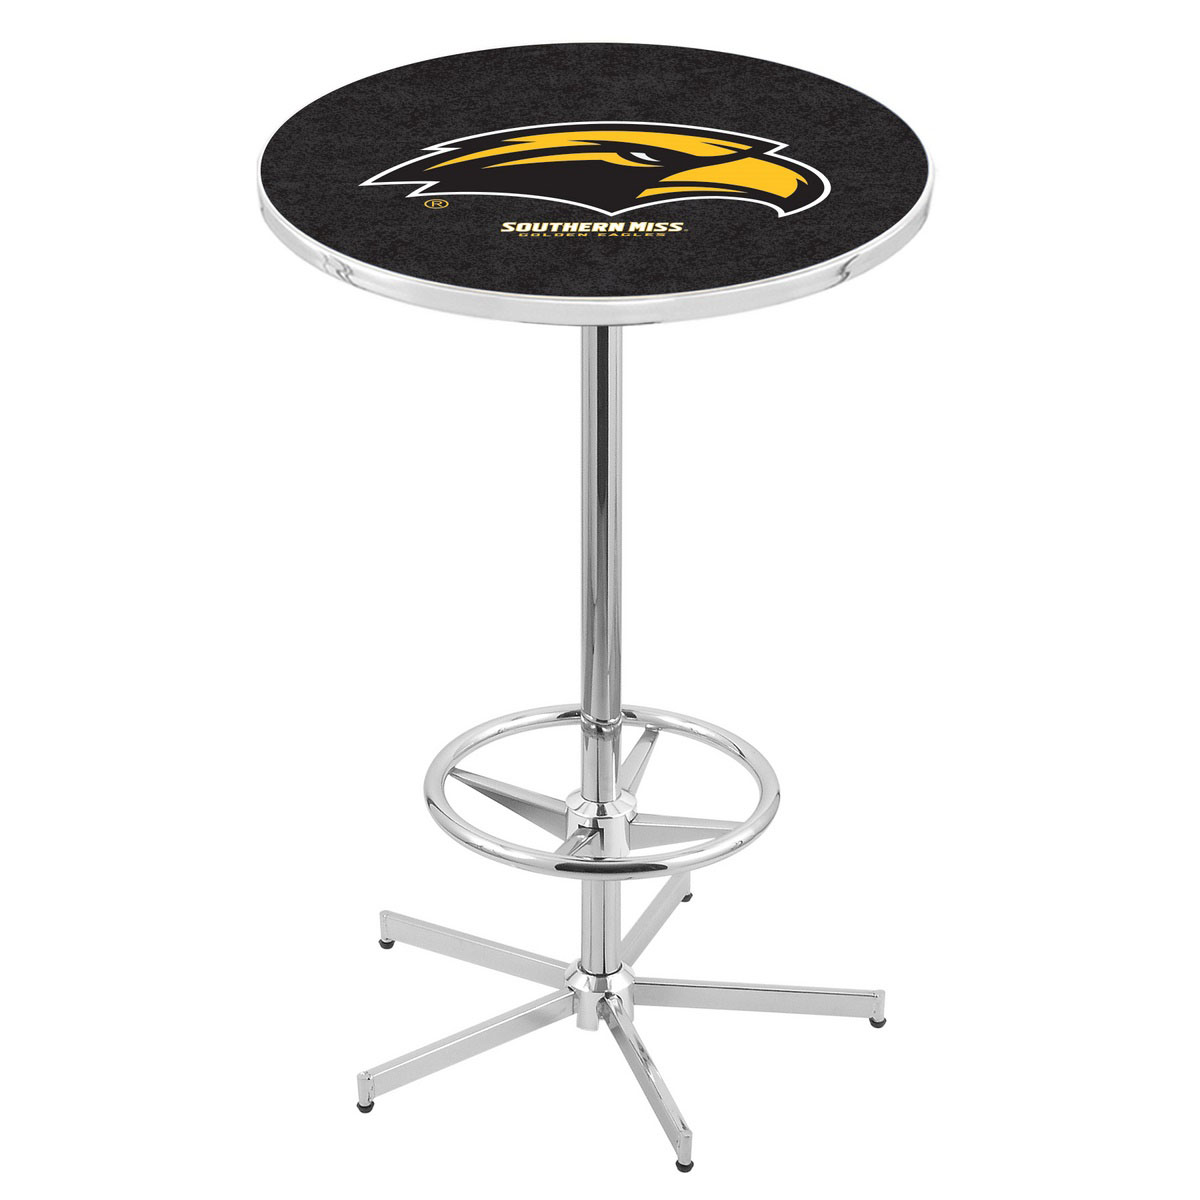 Wonderful Chrome Southern Miss Pub Table Product Photo